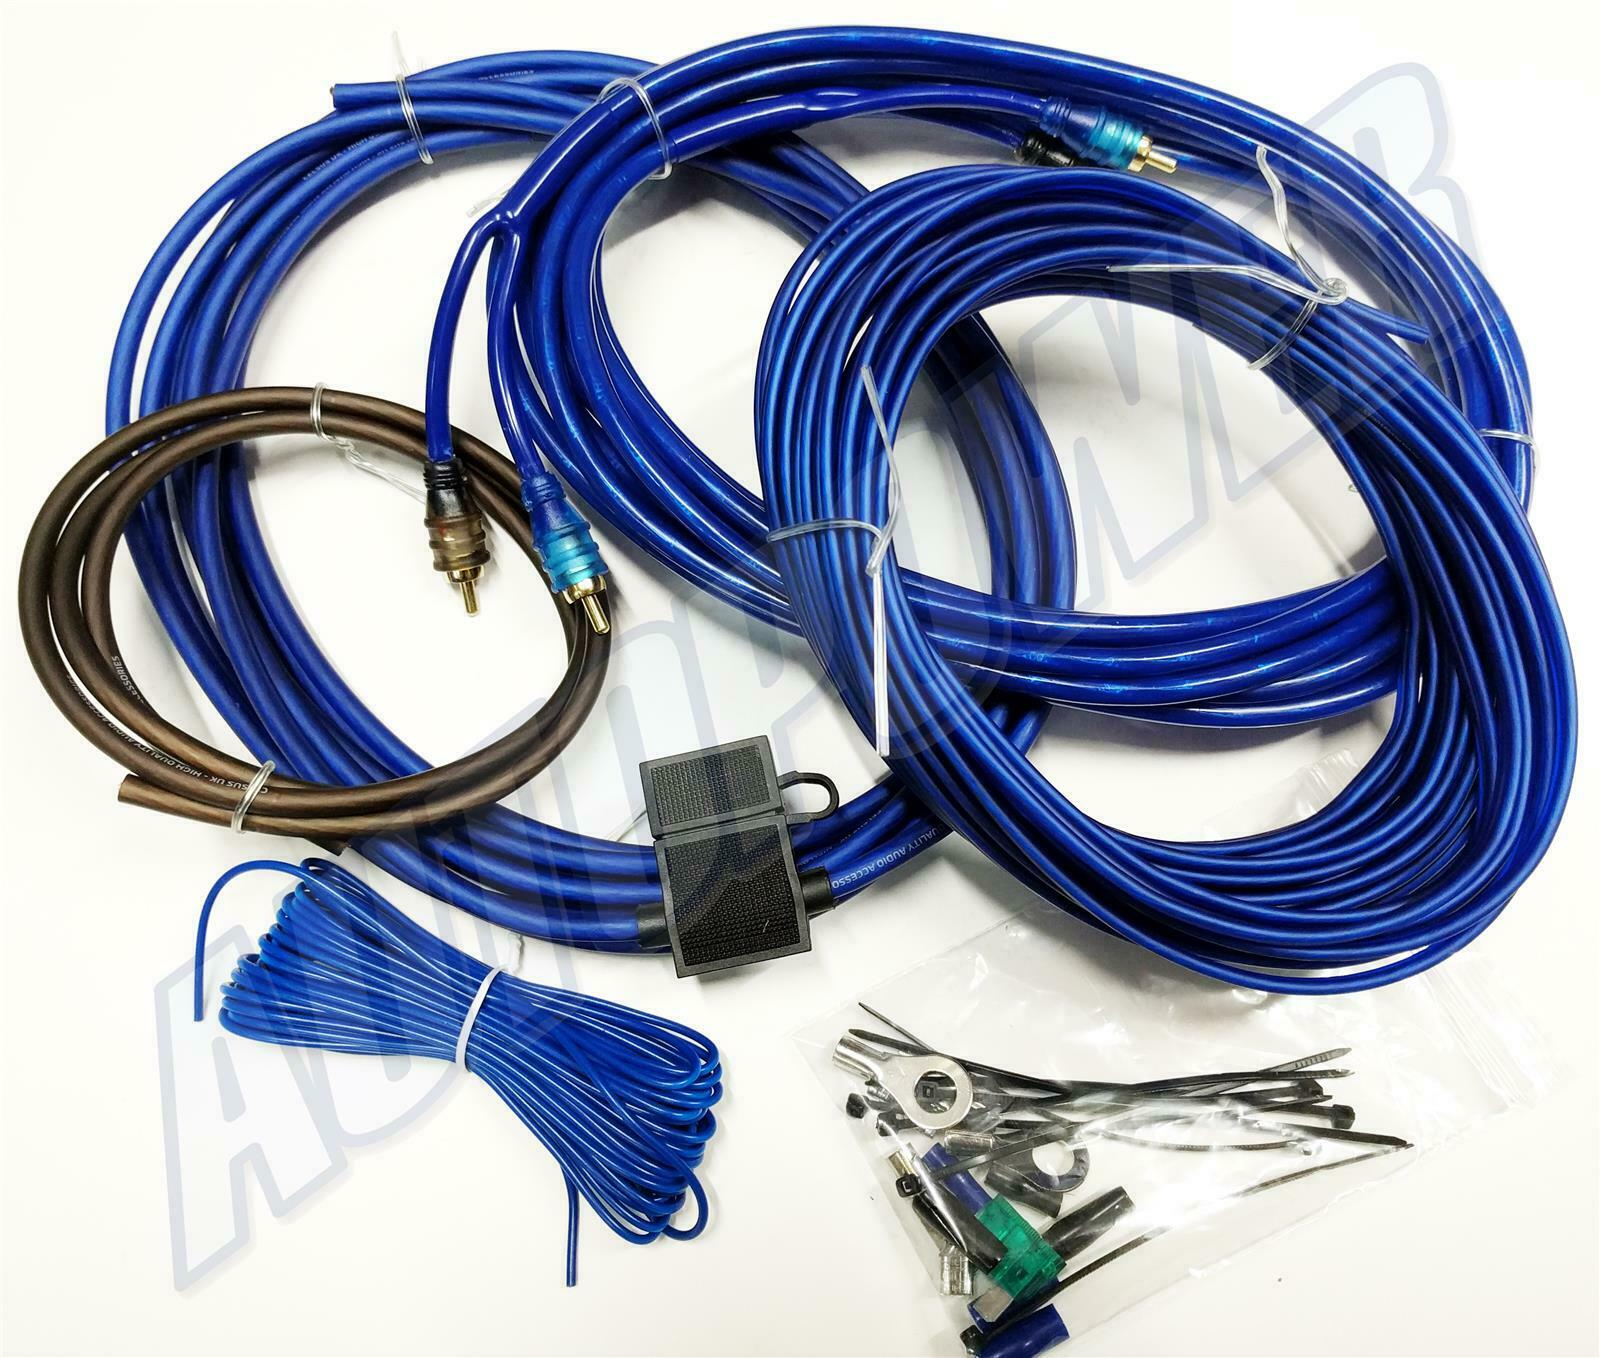 Car Audio 6x9 Speakers Amp Wiring Kit 600 Watt Upgrade Power Cables 1 Of 1free Shipping